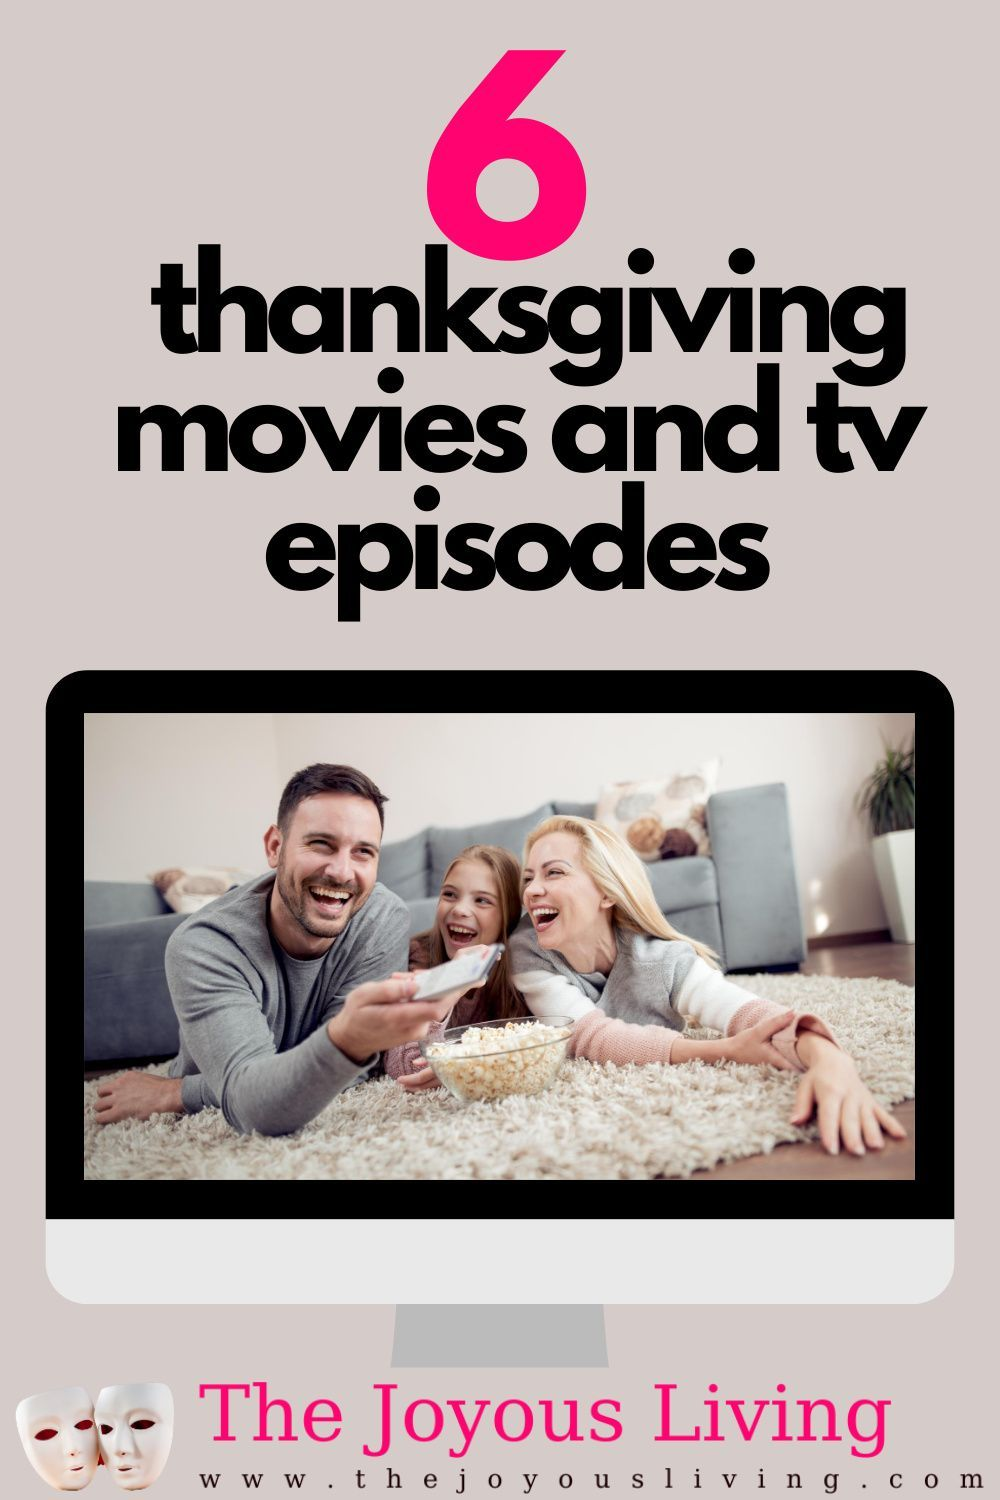 Movies To Watch 6 Fun Thanksgiving Movies And Tv Episodes To Enjoy With The Family In 2020 Tv Episodes Thanksgiving Movies For Kids Good Movies To Watch